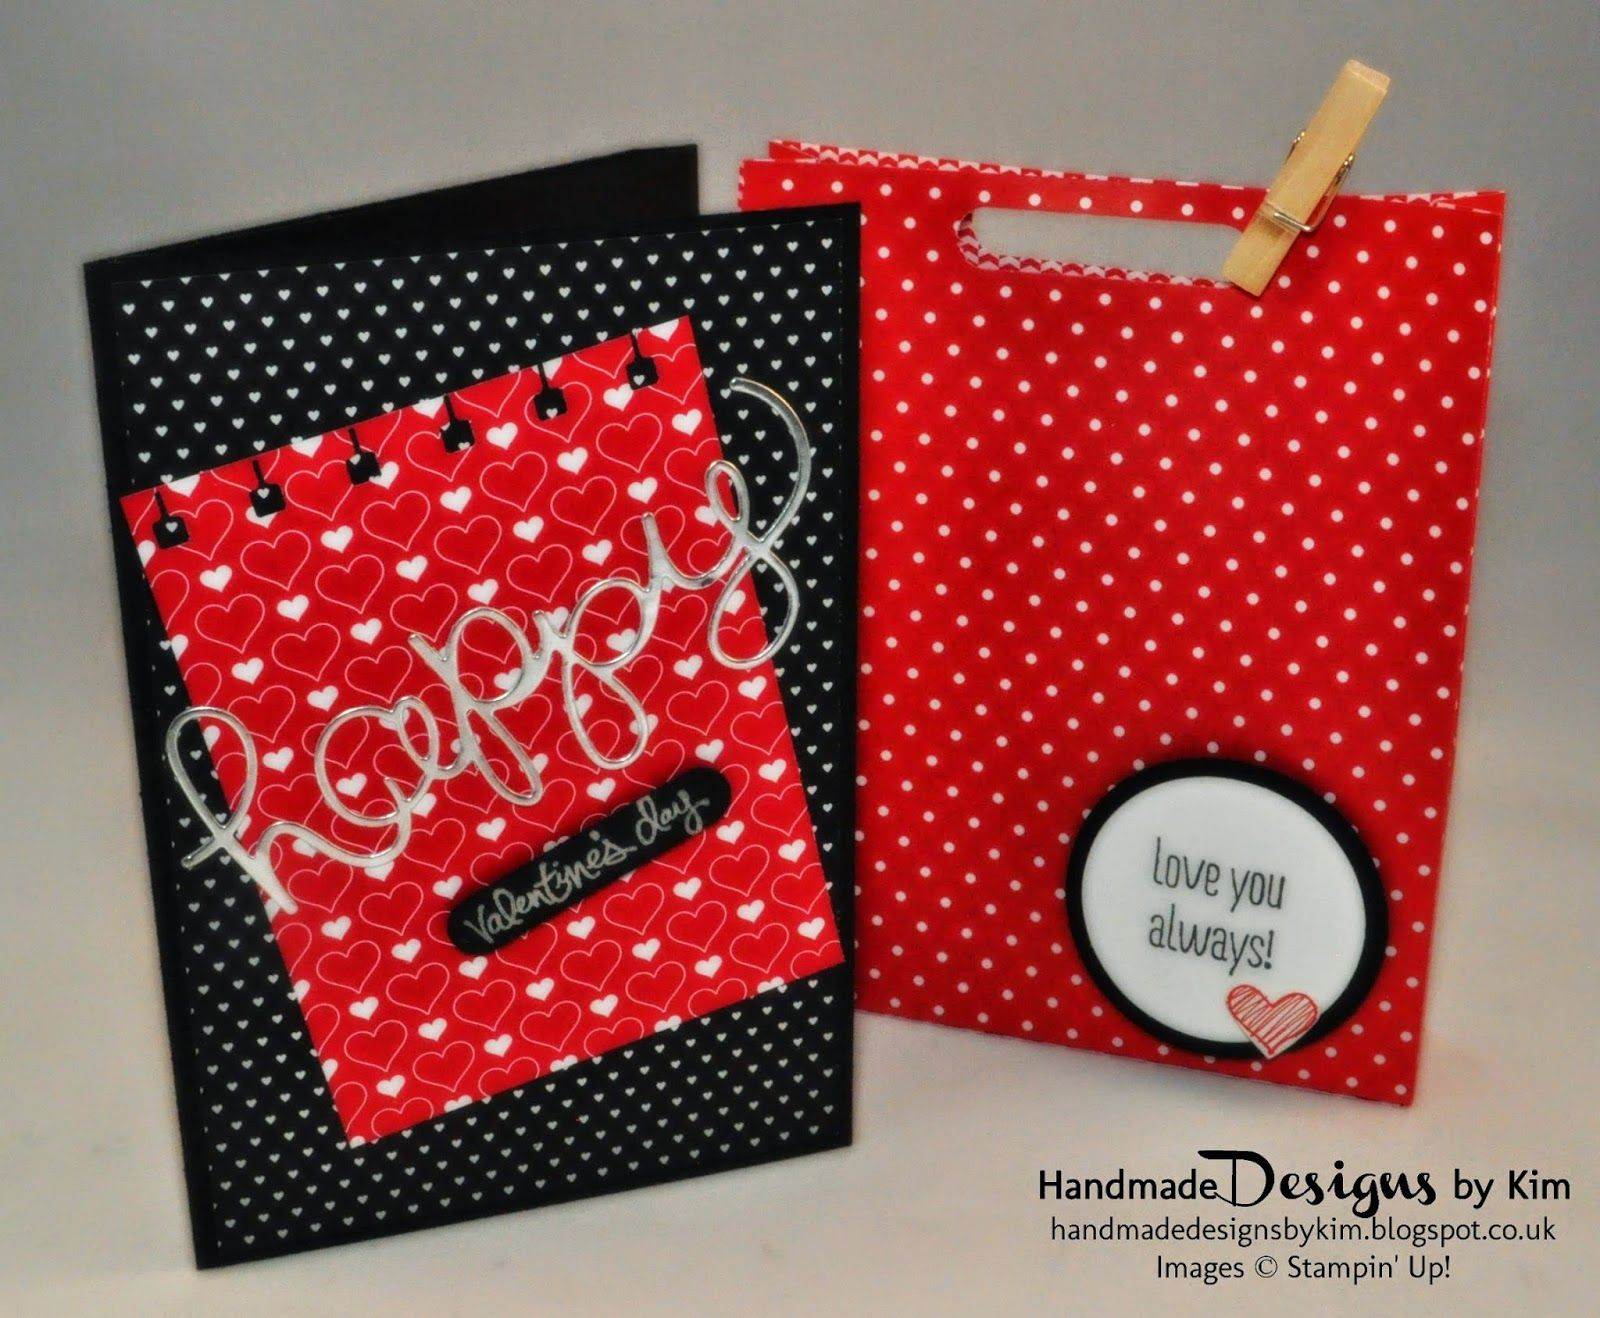 HANDMADE DESIGNS BY KIM Handmade Valentines Card using the Stacked with Love Designer Series Paper Stack, Hello You & Mini Treat Bag Thinlits Dies and other Stampin' Up! products. Handmade Valentines Gift Bag using Brights Designer Series Paper Stack and other Stampin' Up! products. Check out my blog for more details and step by step instructions on how to make the gift bag!